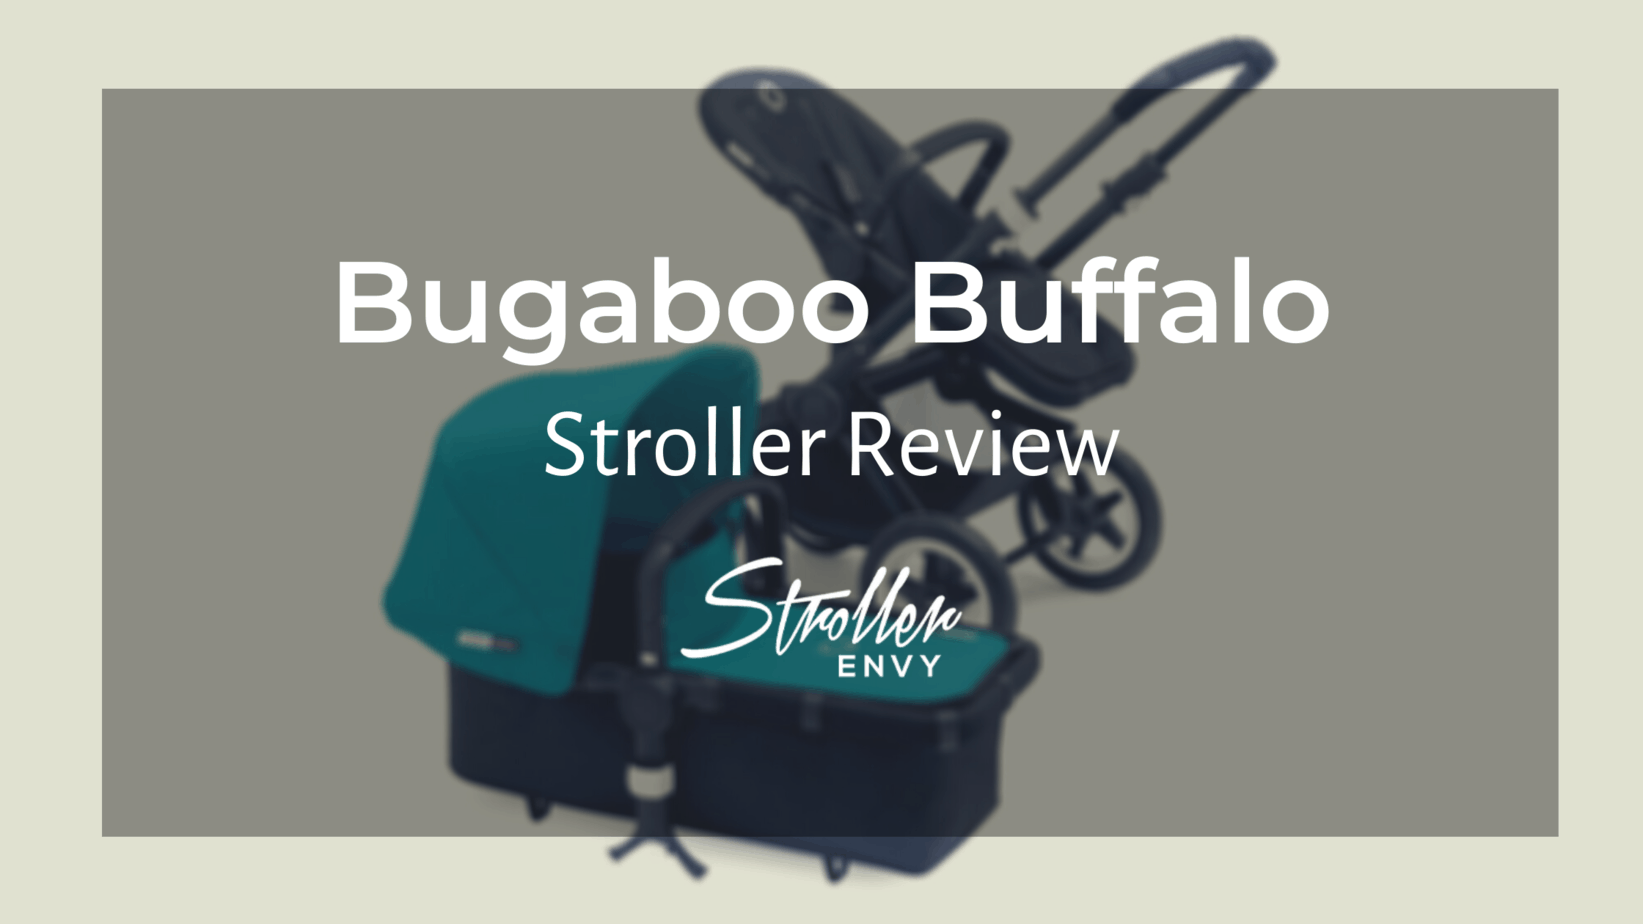 Bugaboo Buffalo Stroller Review